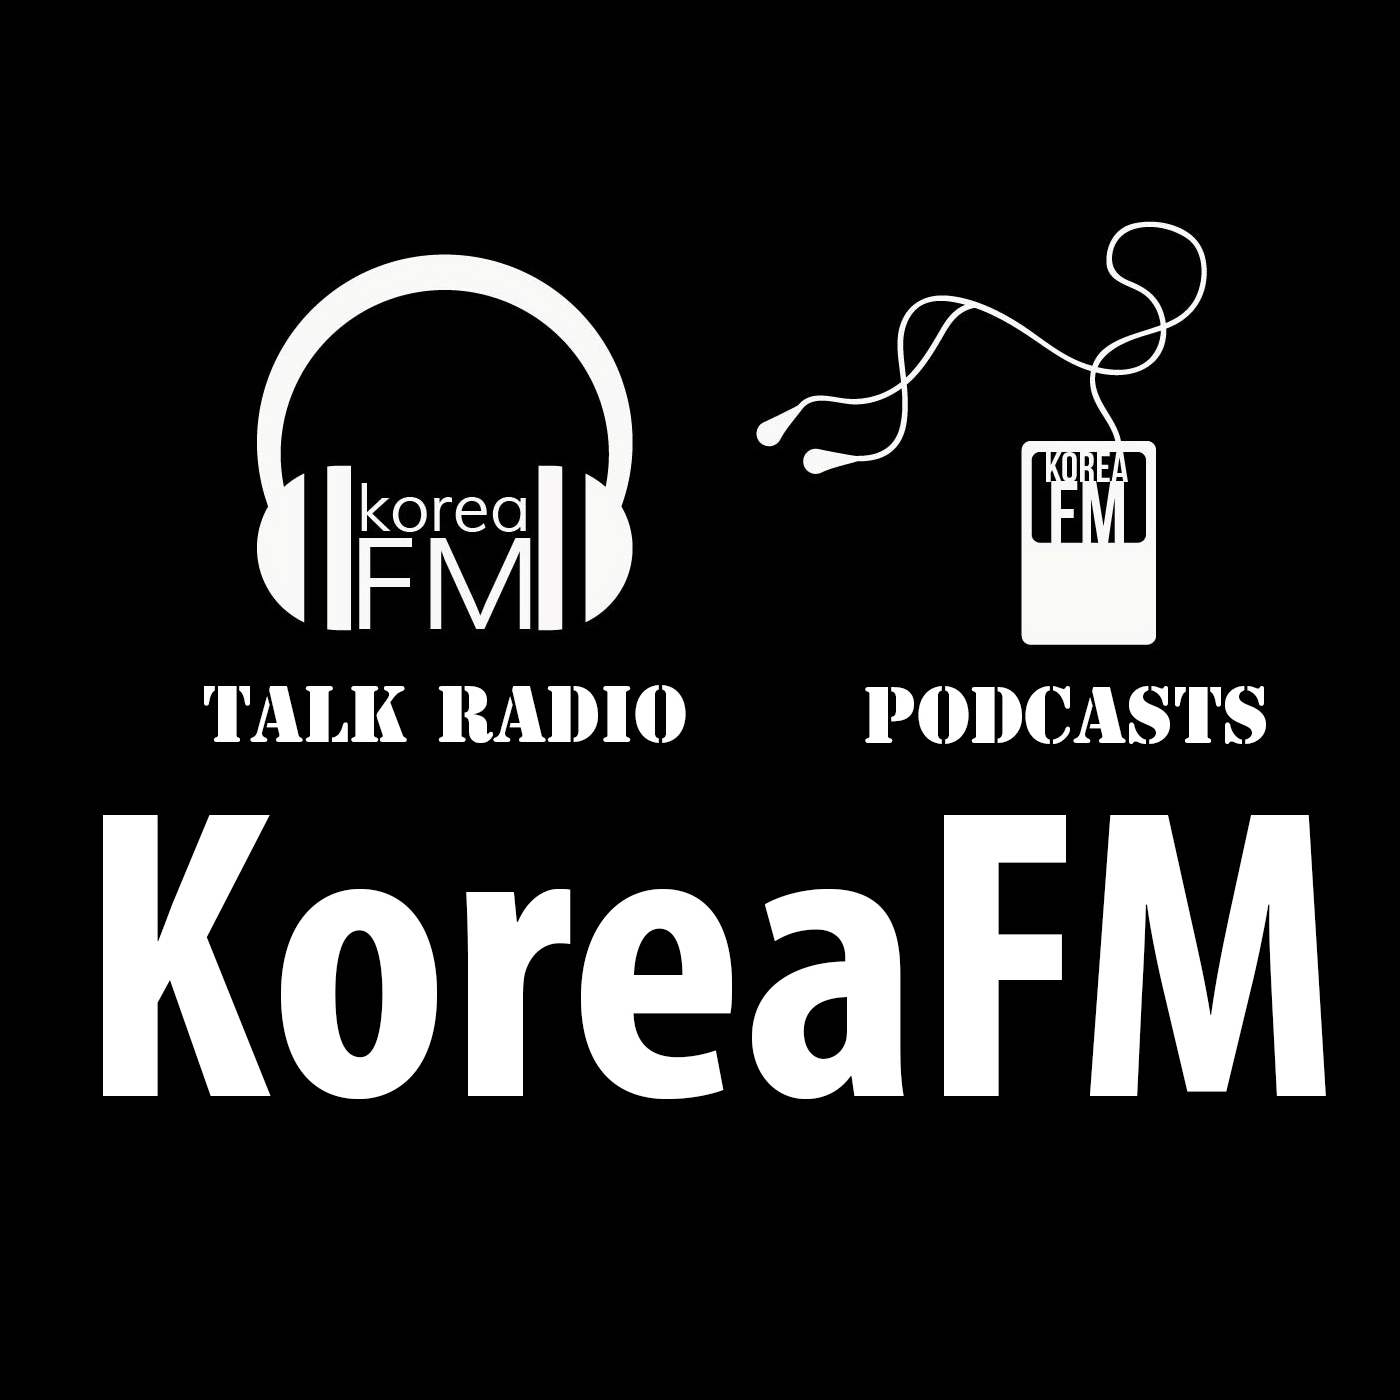 Korea FM News & Talk | KoreaFM.net